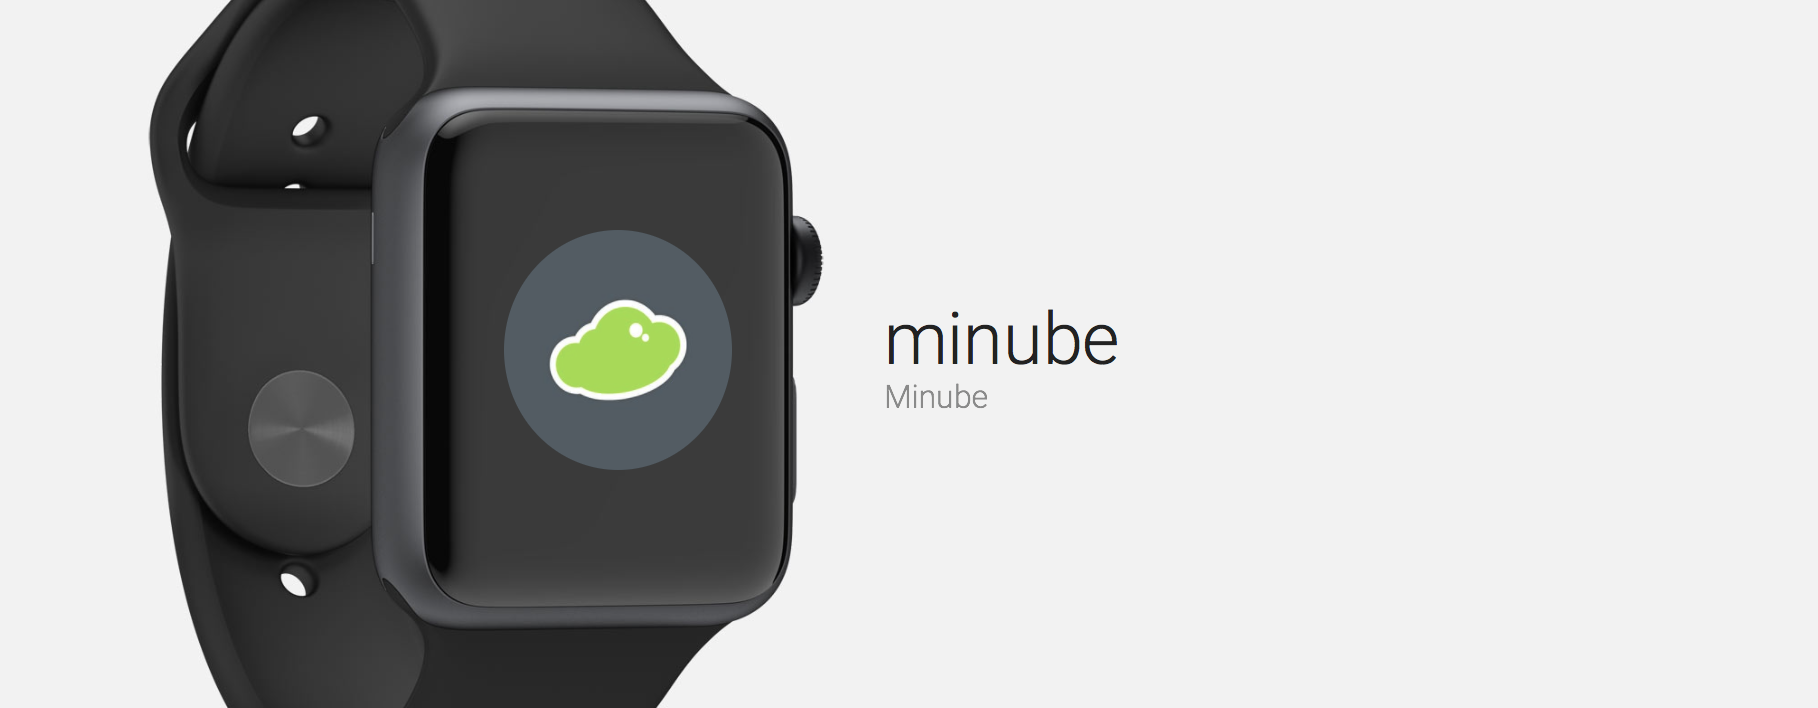 Minube Helps You Discover Points Of Interest Near You